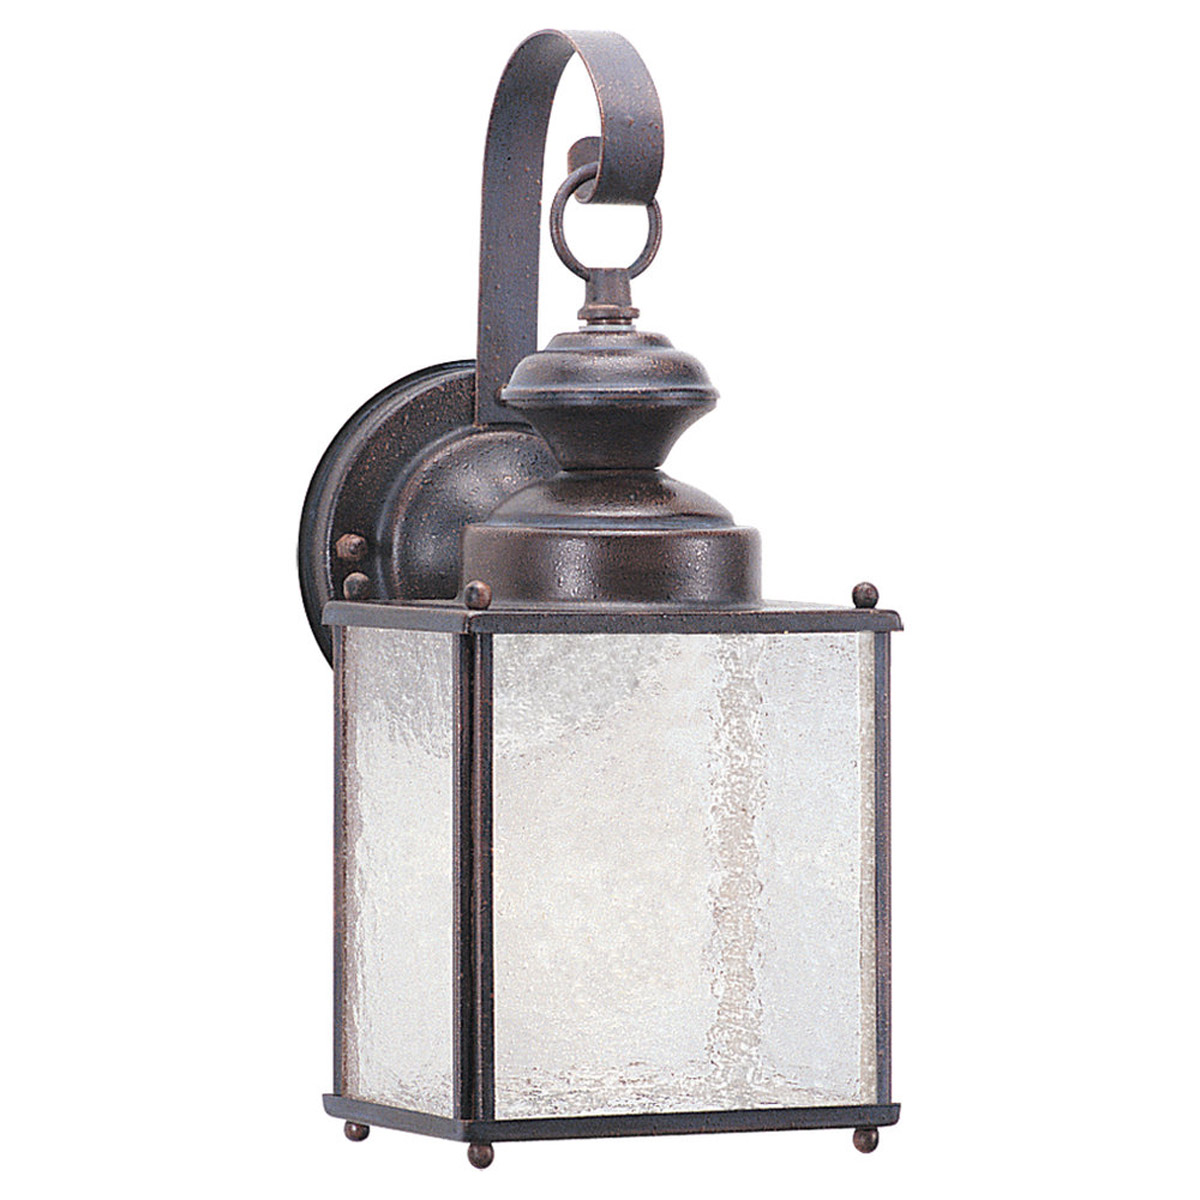 Sea Gull Lighting Jamestowne 1 Light Outdoor Wall Lantern in Textured Rust Patina 8981PBLE-08 photo